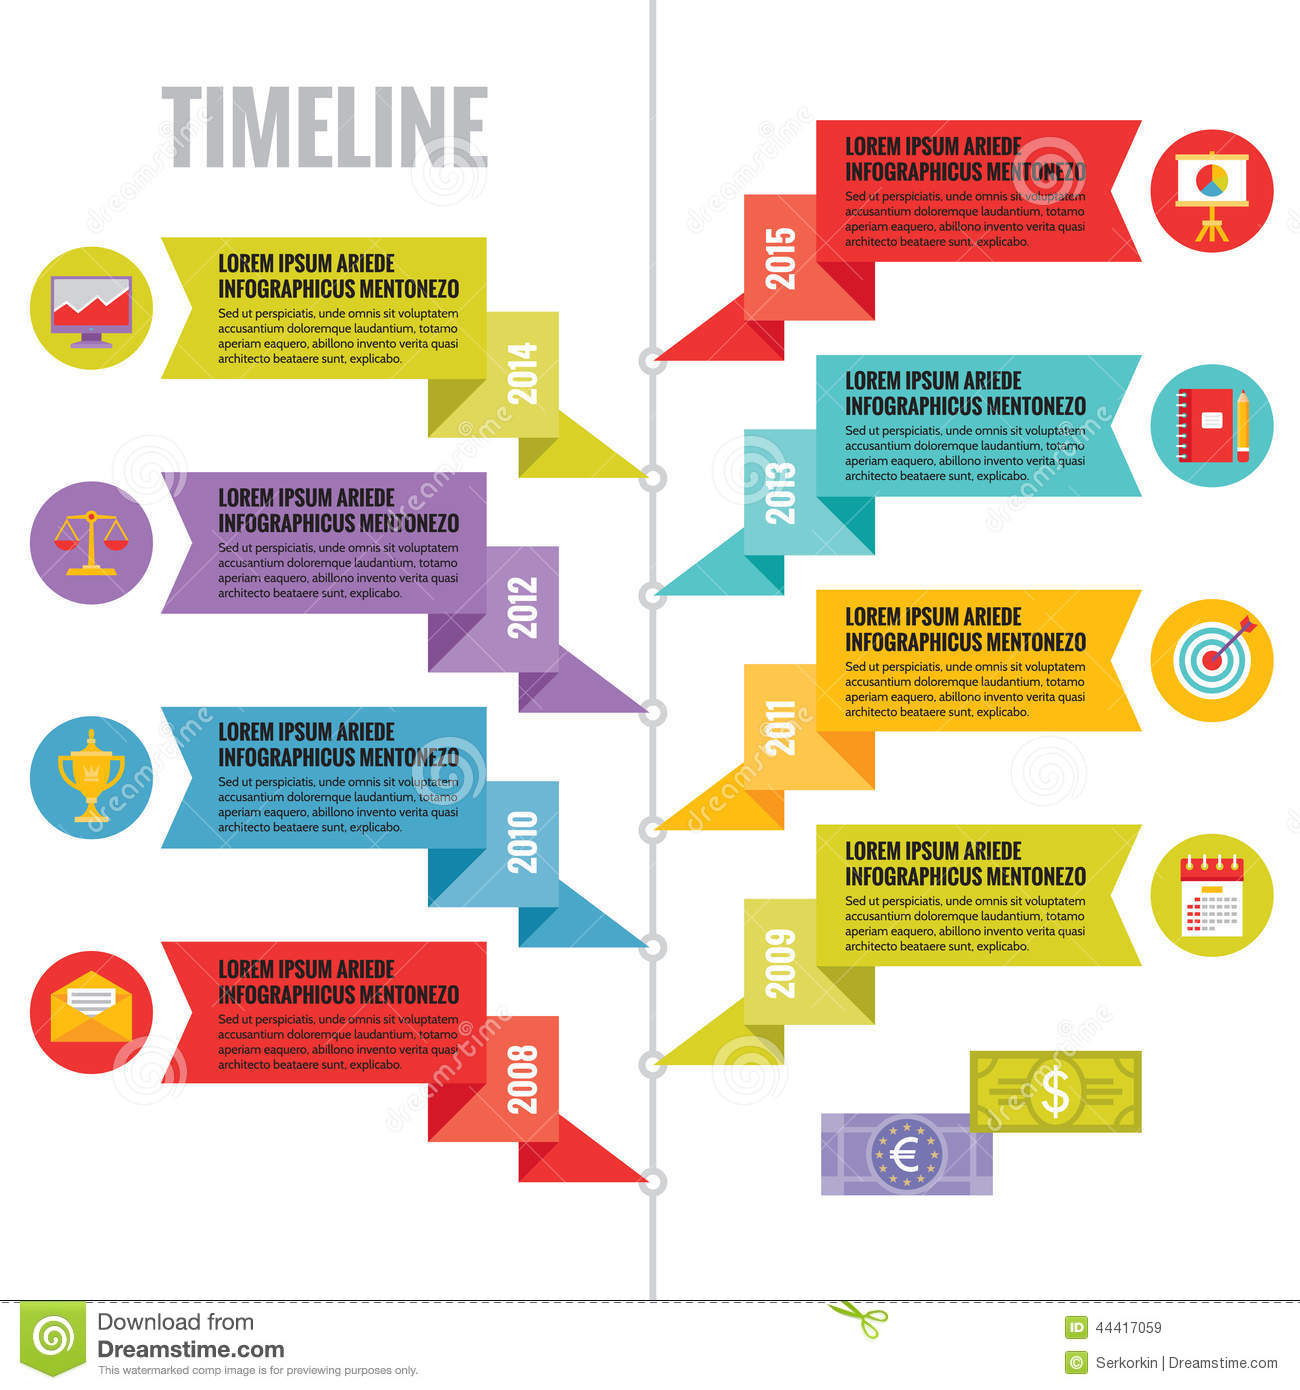 Creative Powerpoint Timeline Template: Infographic Vector Concept In Flat Design Style